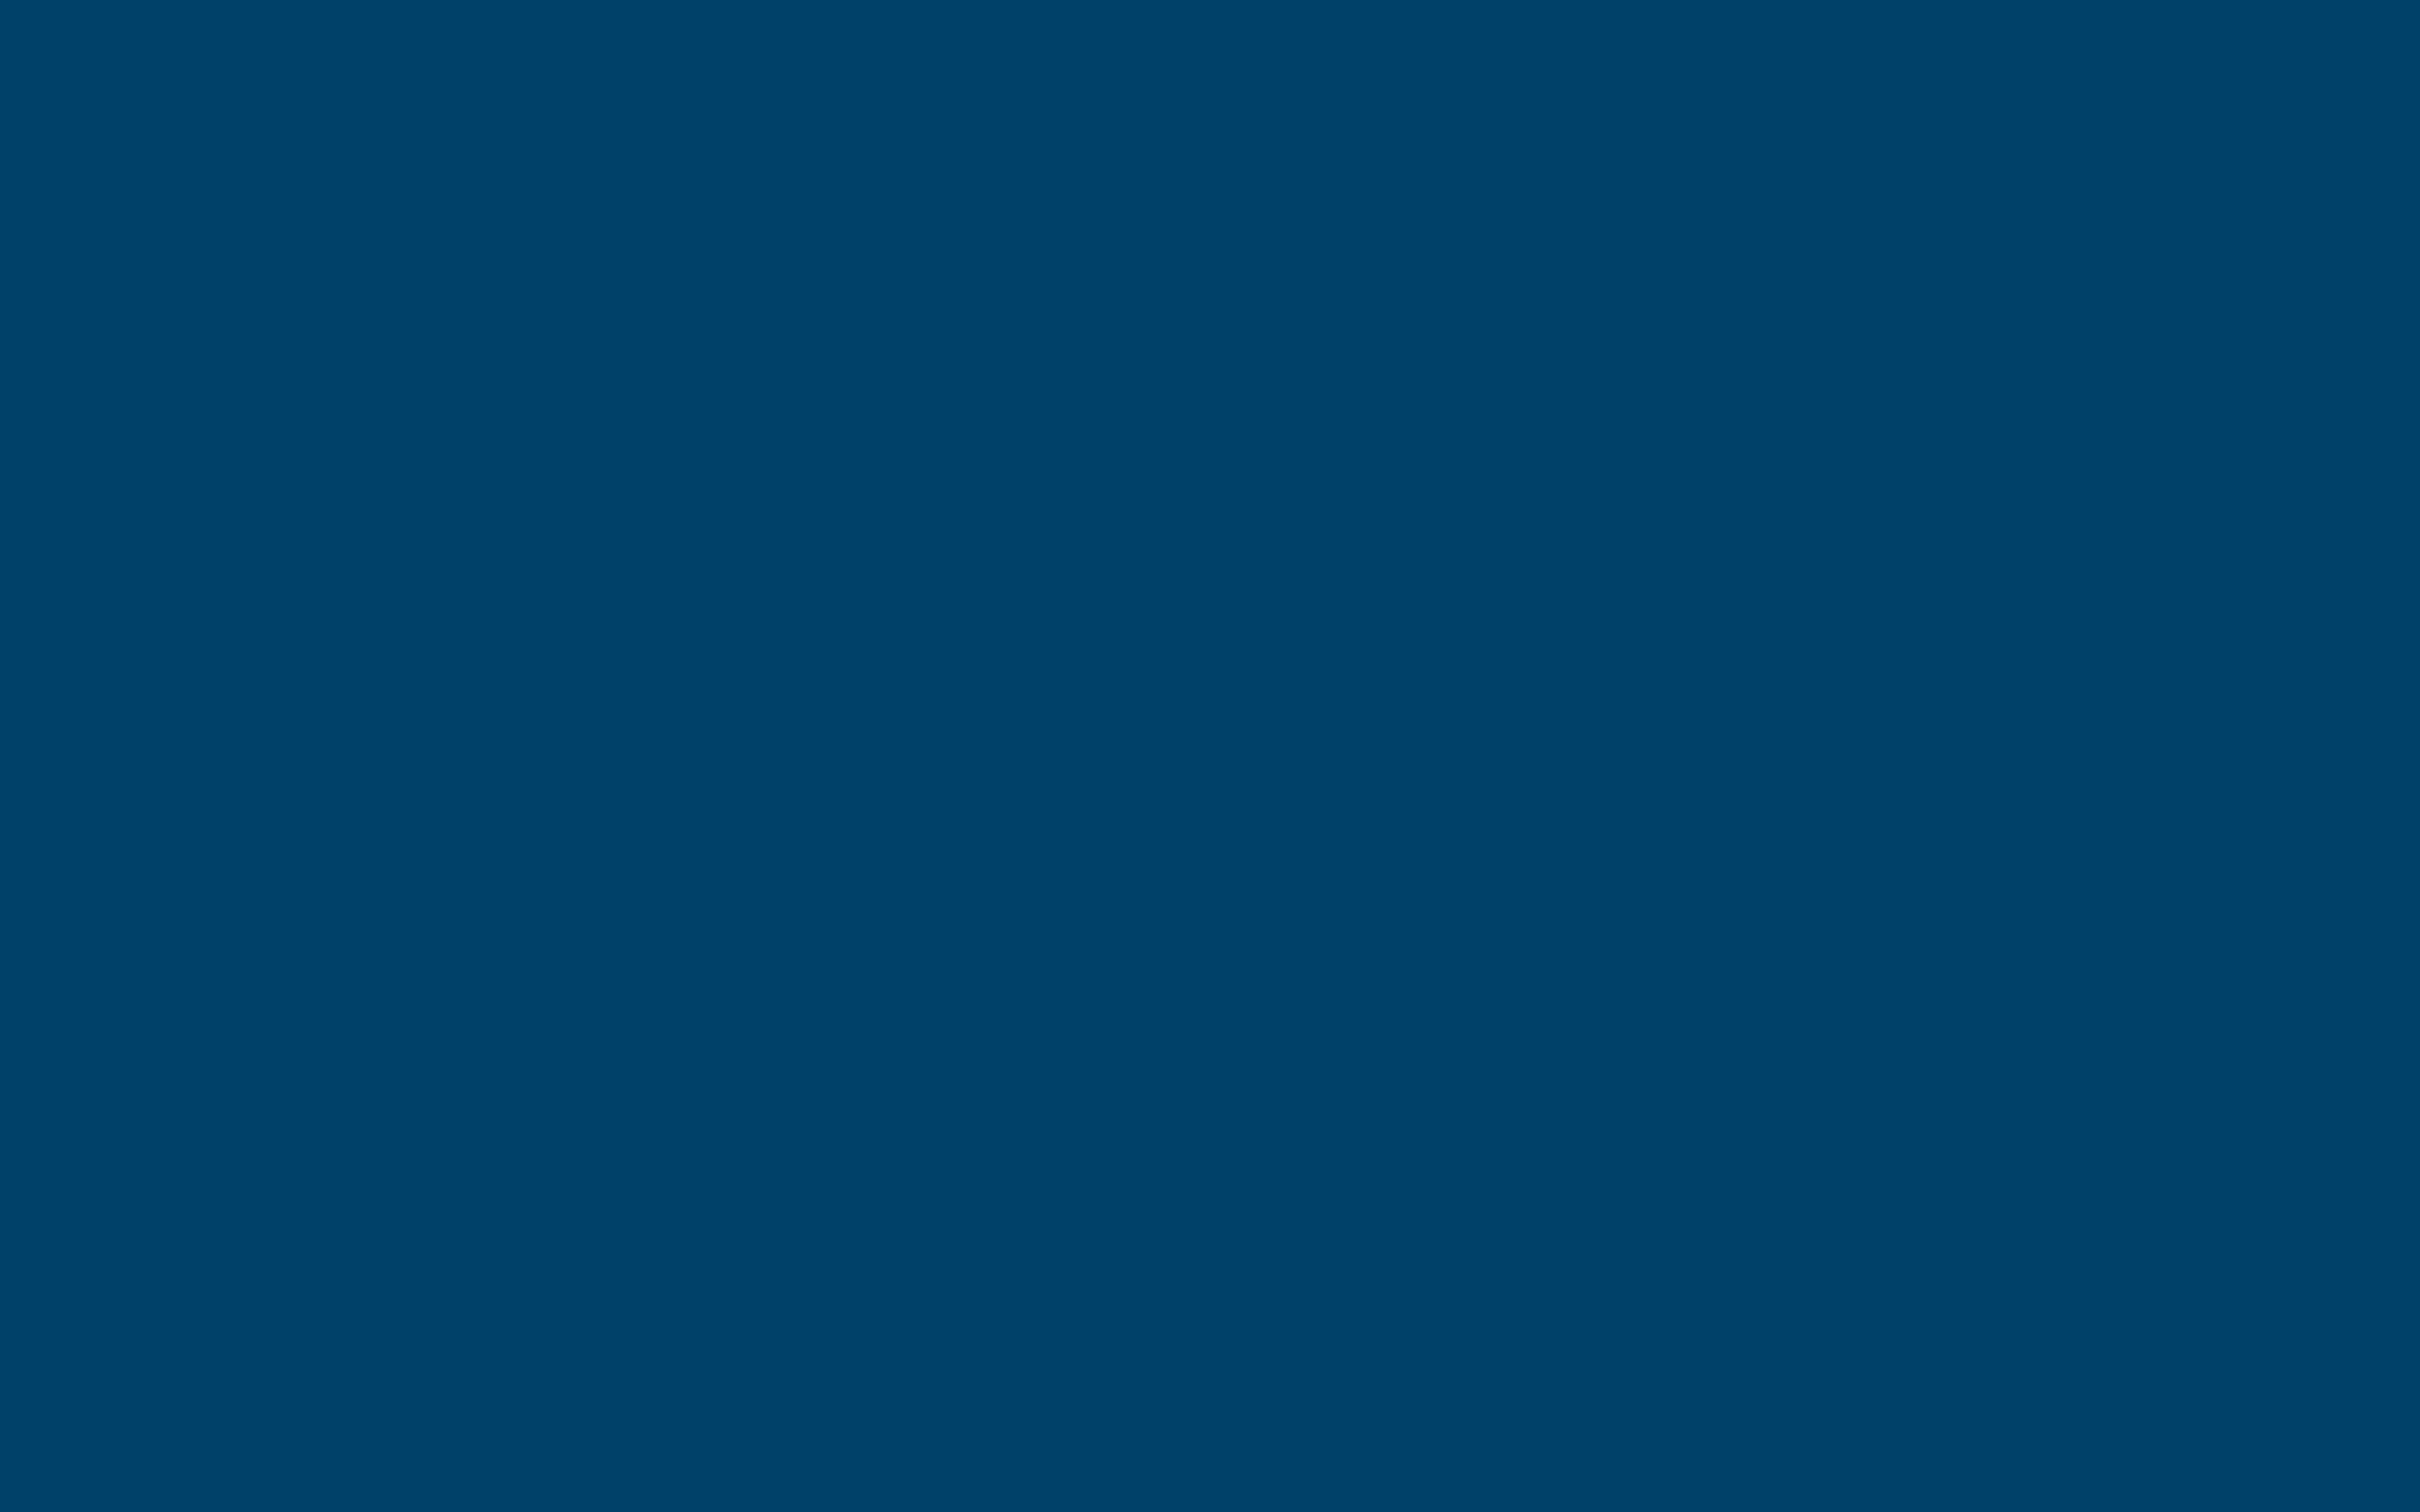 2560x1600 Dark Imperial Blue Solid Color Background